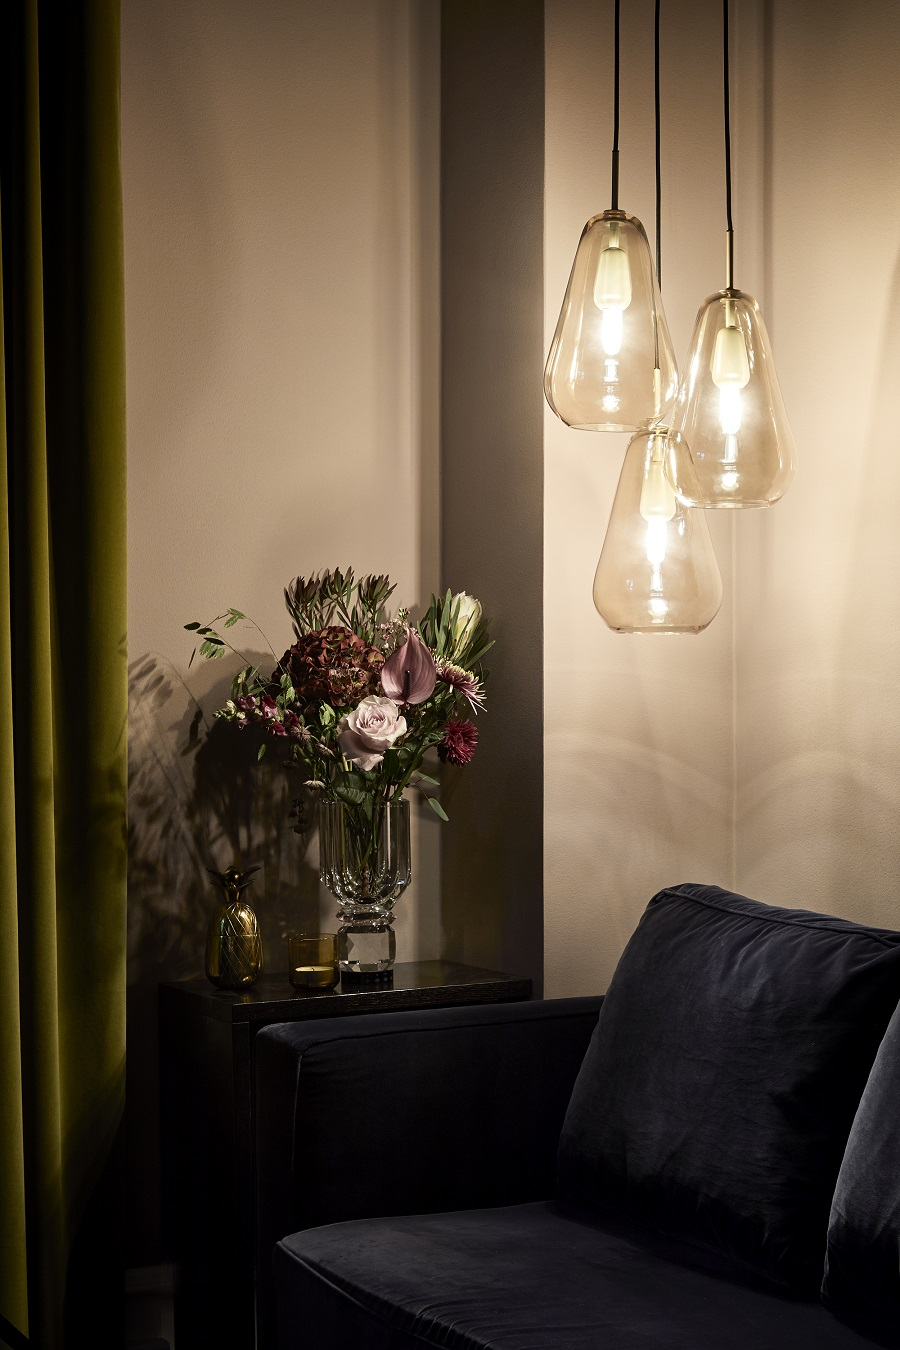 Introducing New Danish Lighting Brand, Nuura_Anoli